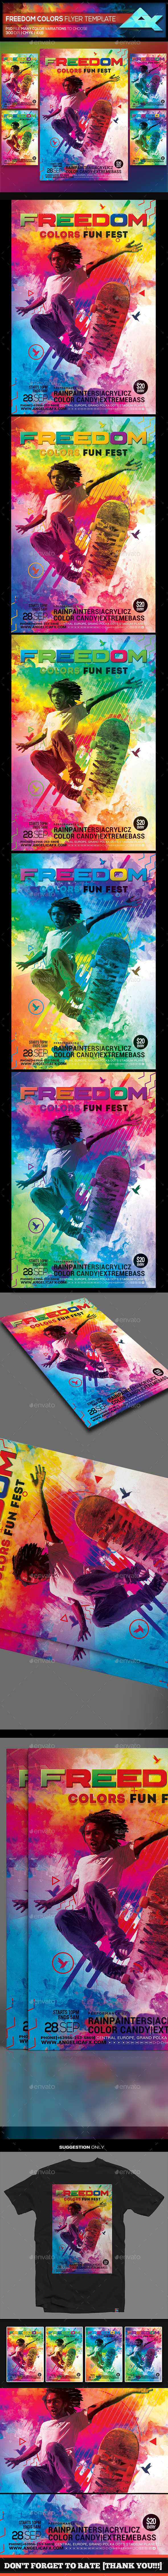 Freedom Colors Fun Fest Photoshop Flyer Template